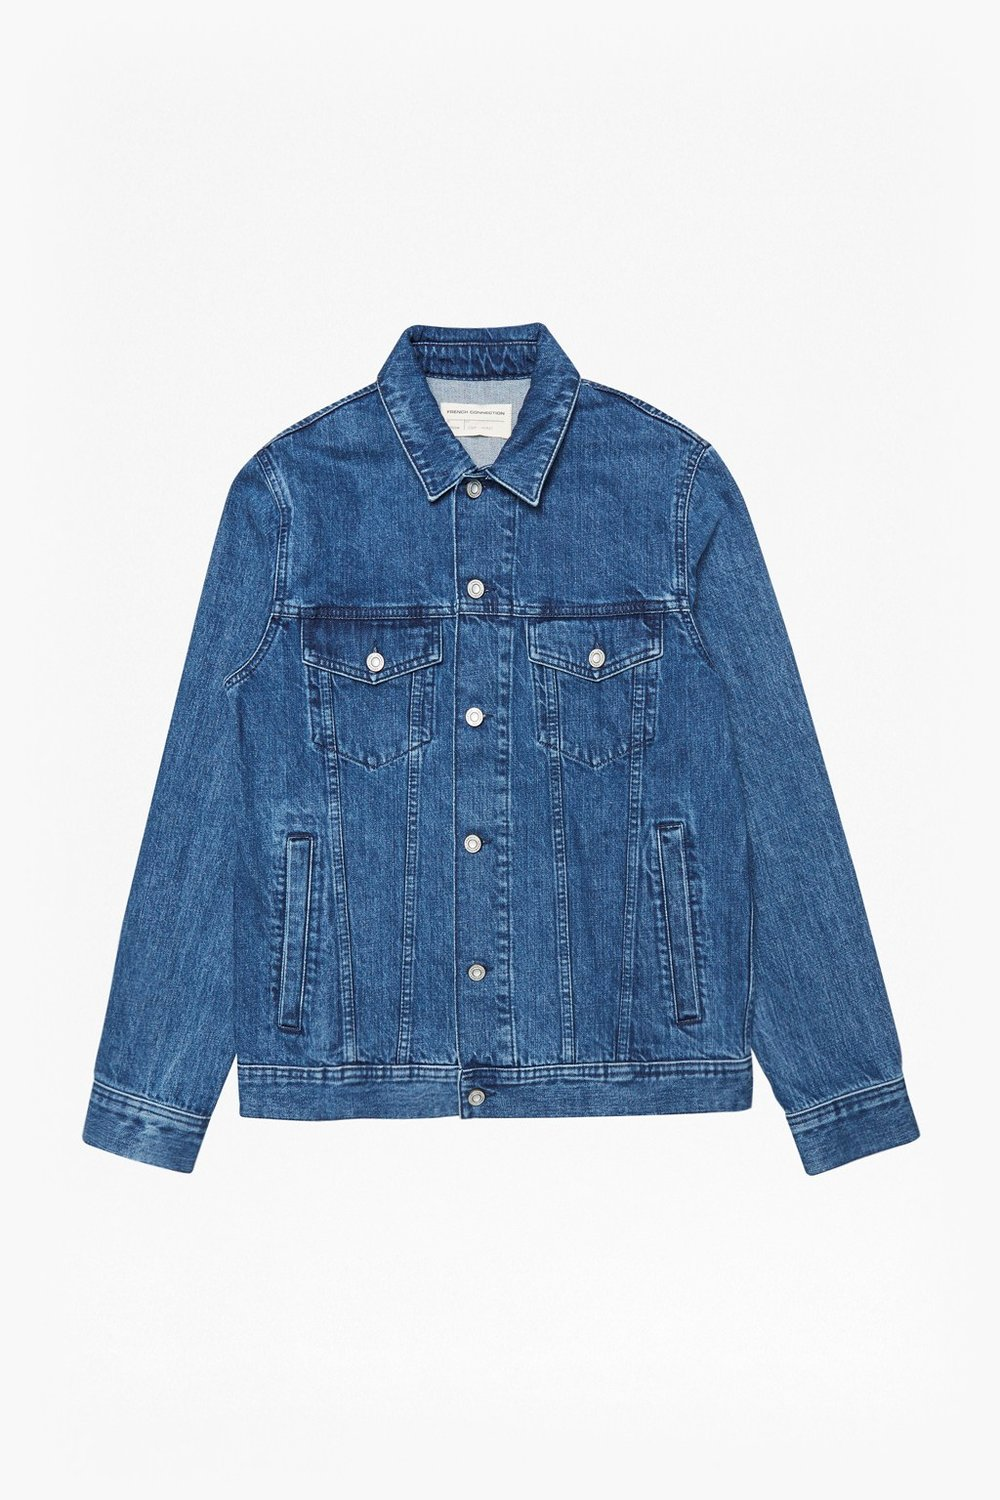 Bleached-Denim-Jacket.jpg